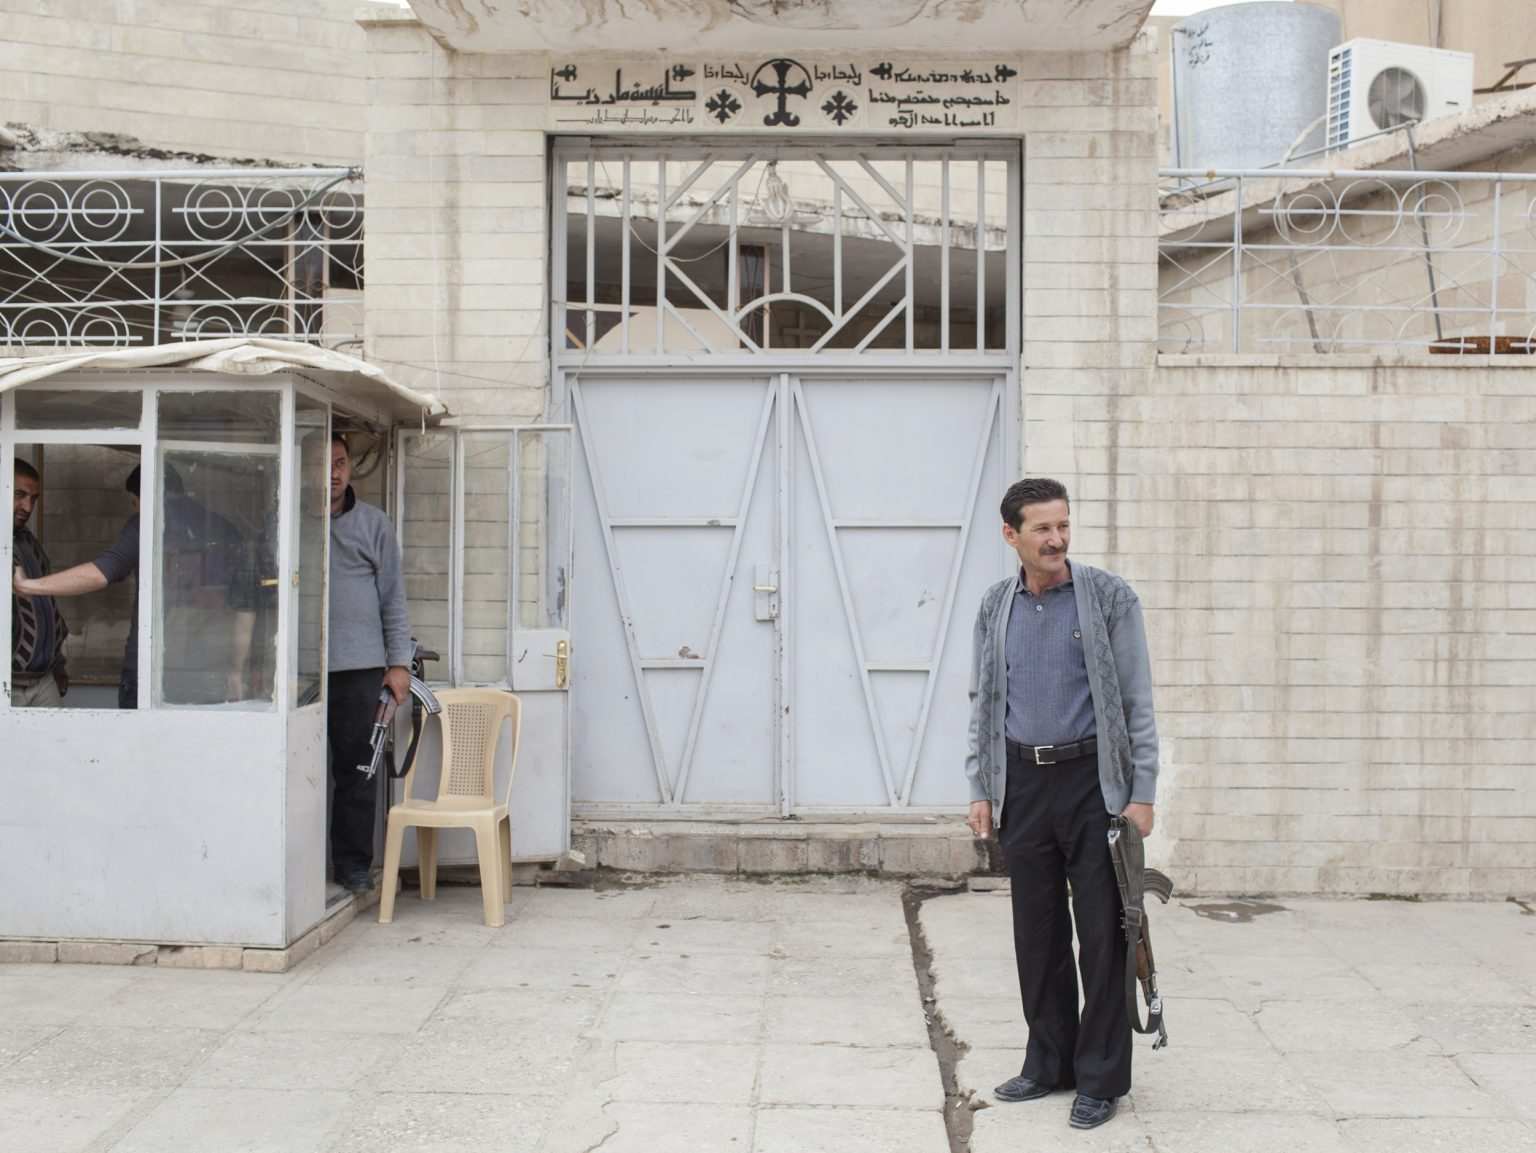 Members of the Christian militia patrolling the entrance to a church in the Christian town of Qaraqosh. The municipality of Qaraqosh has organized Christian militia in the city of Qaraqosh in order to protect the population from terroristic attacks.